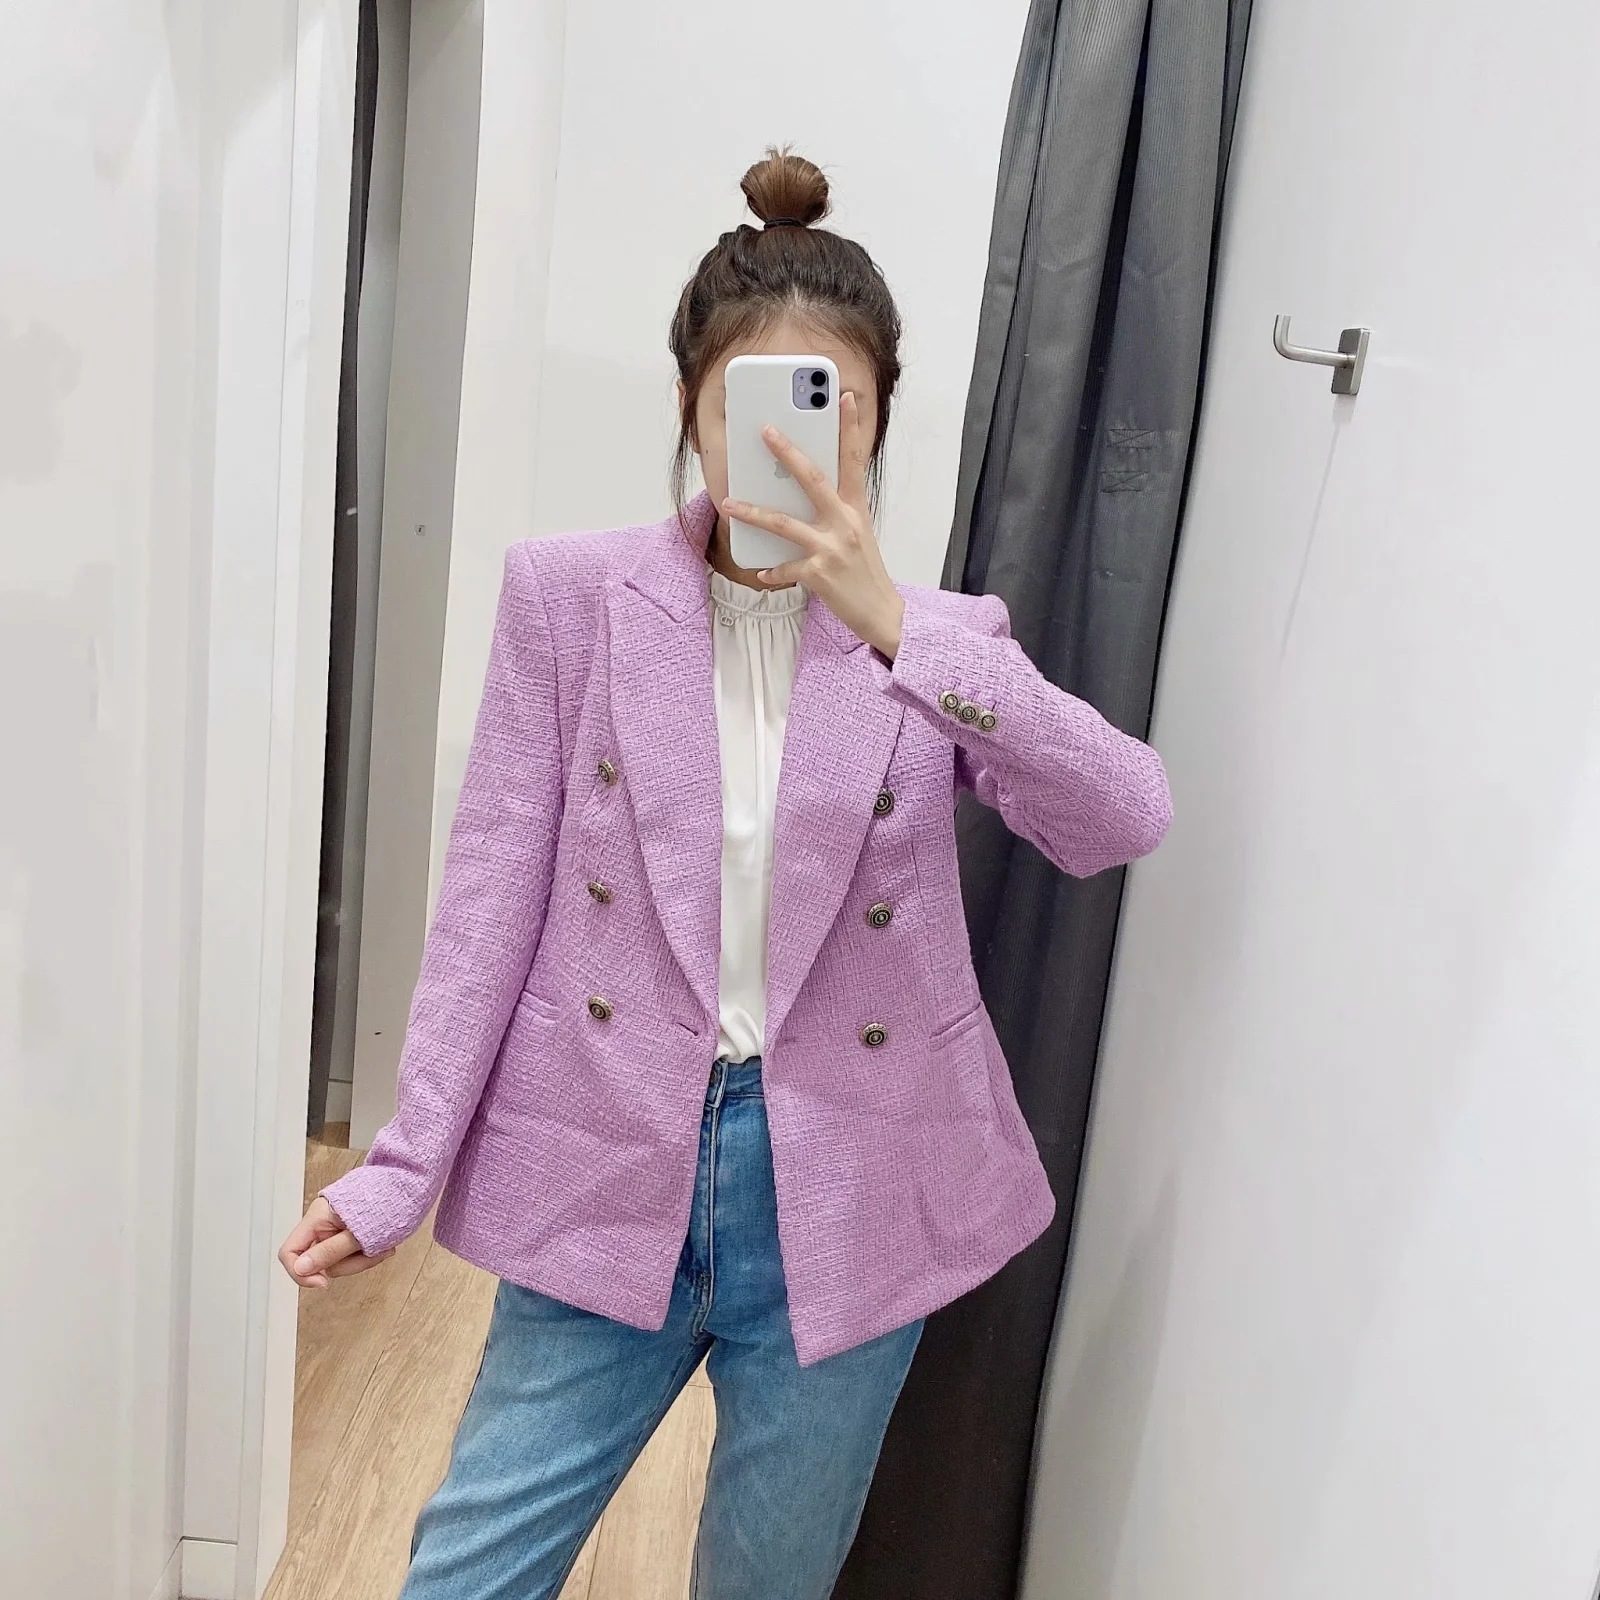 Autumn and winter women's high-quality women's casual ladies blazer 2020 new double breasted slim ladies jacket small suit